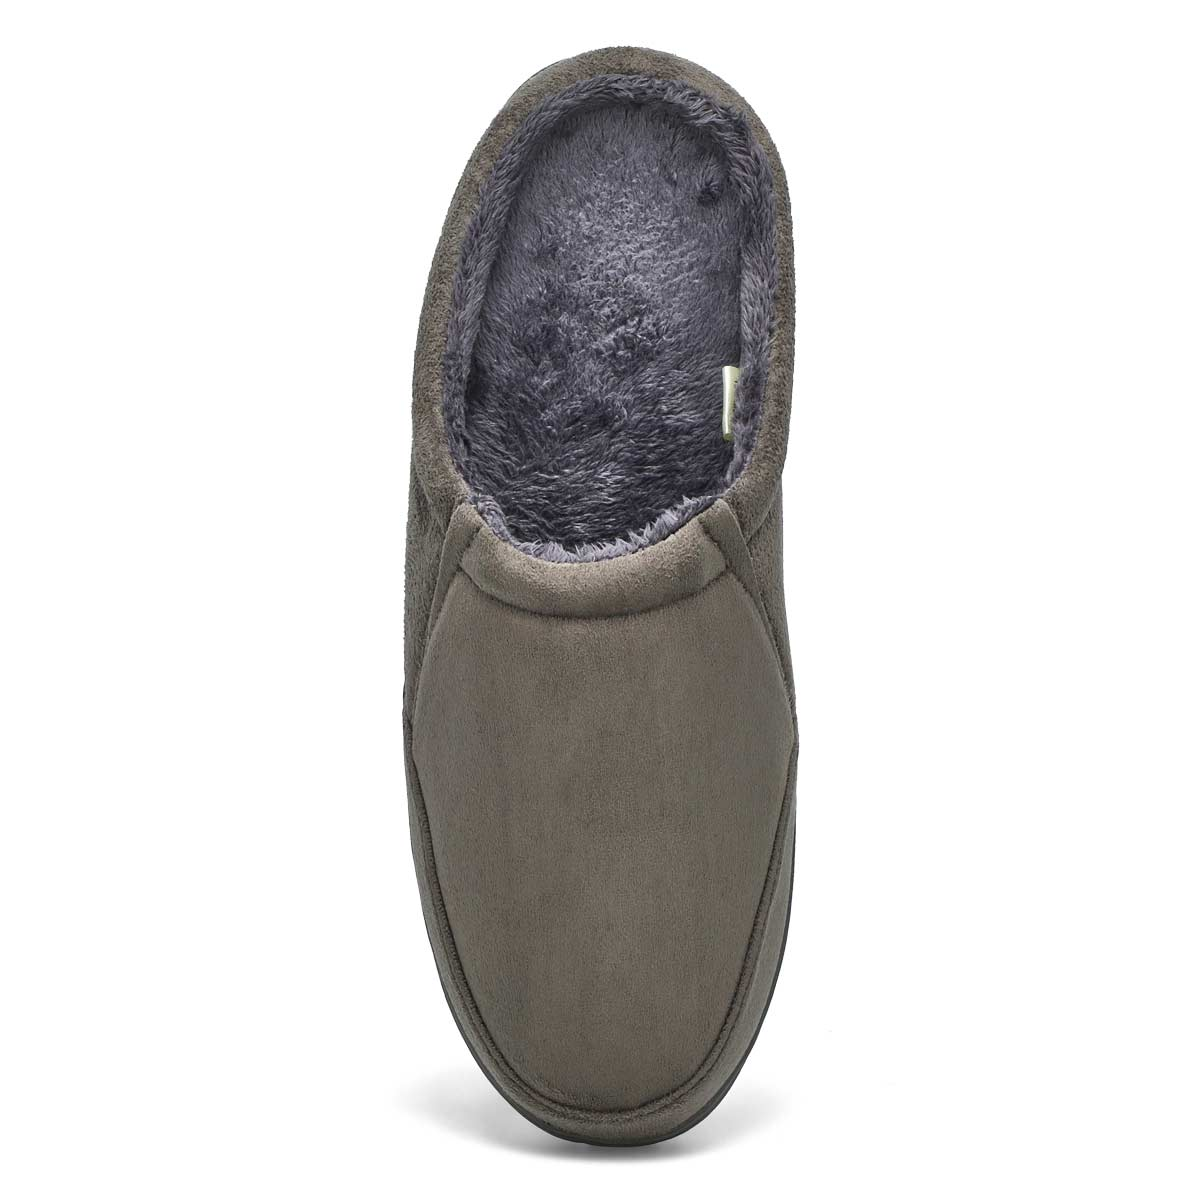 Mns Polar II charcoal open back slipper